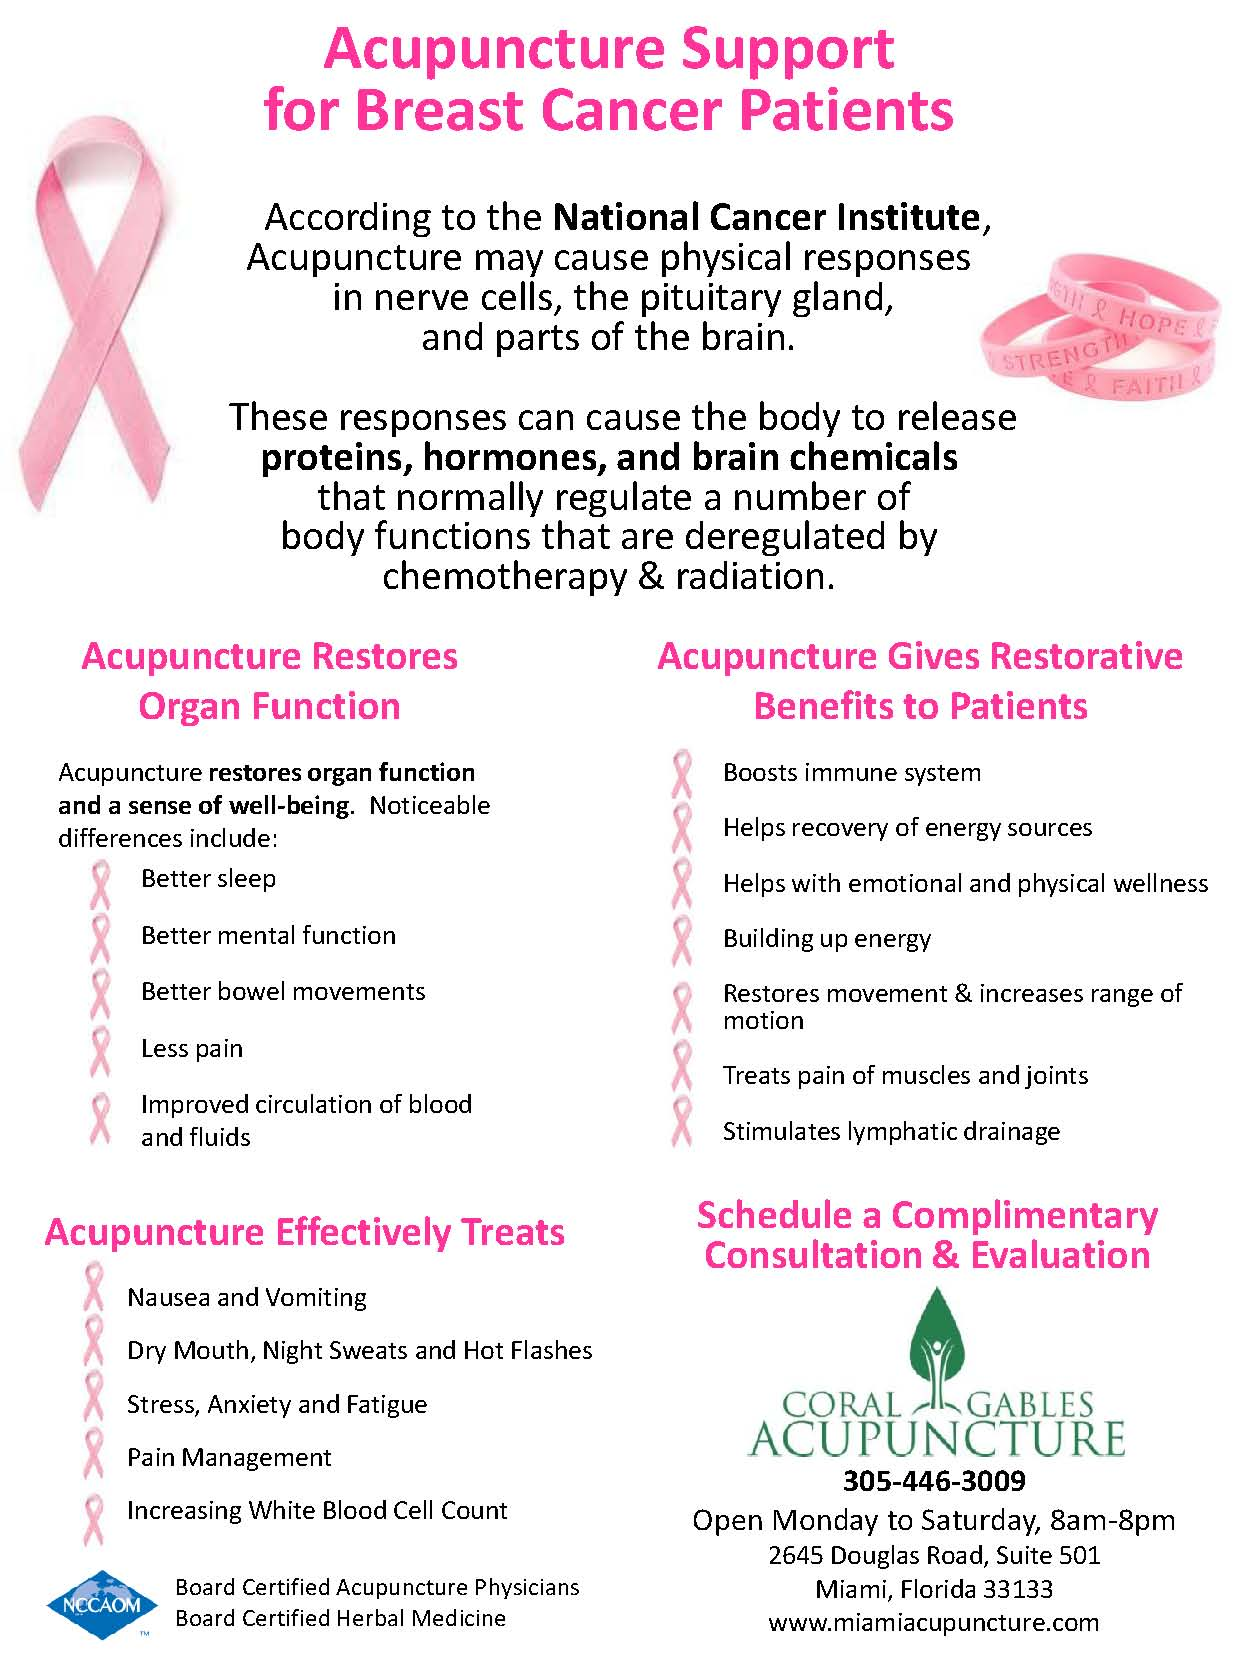 Acupuncture for breast cancer patient. Acupuncture can help with cancer and oncology